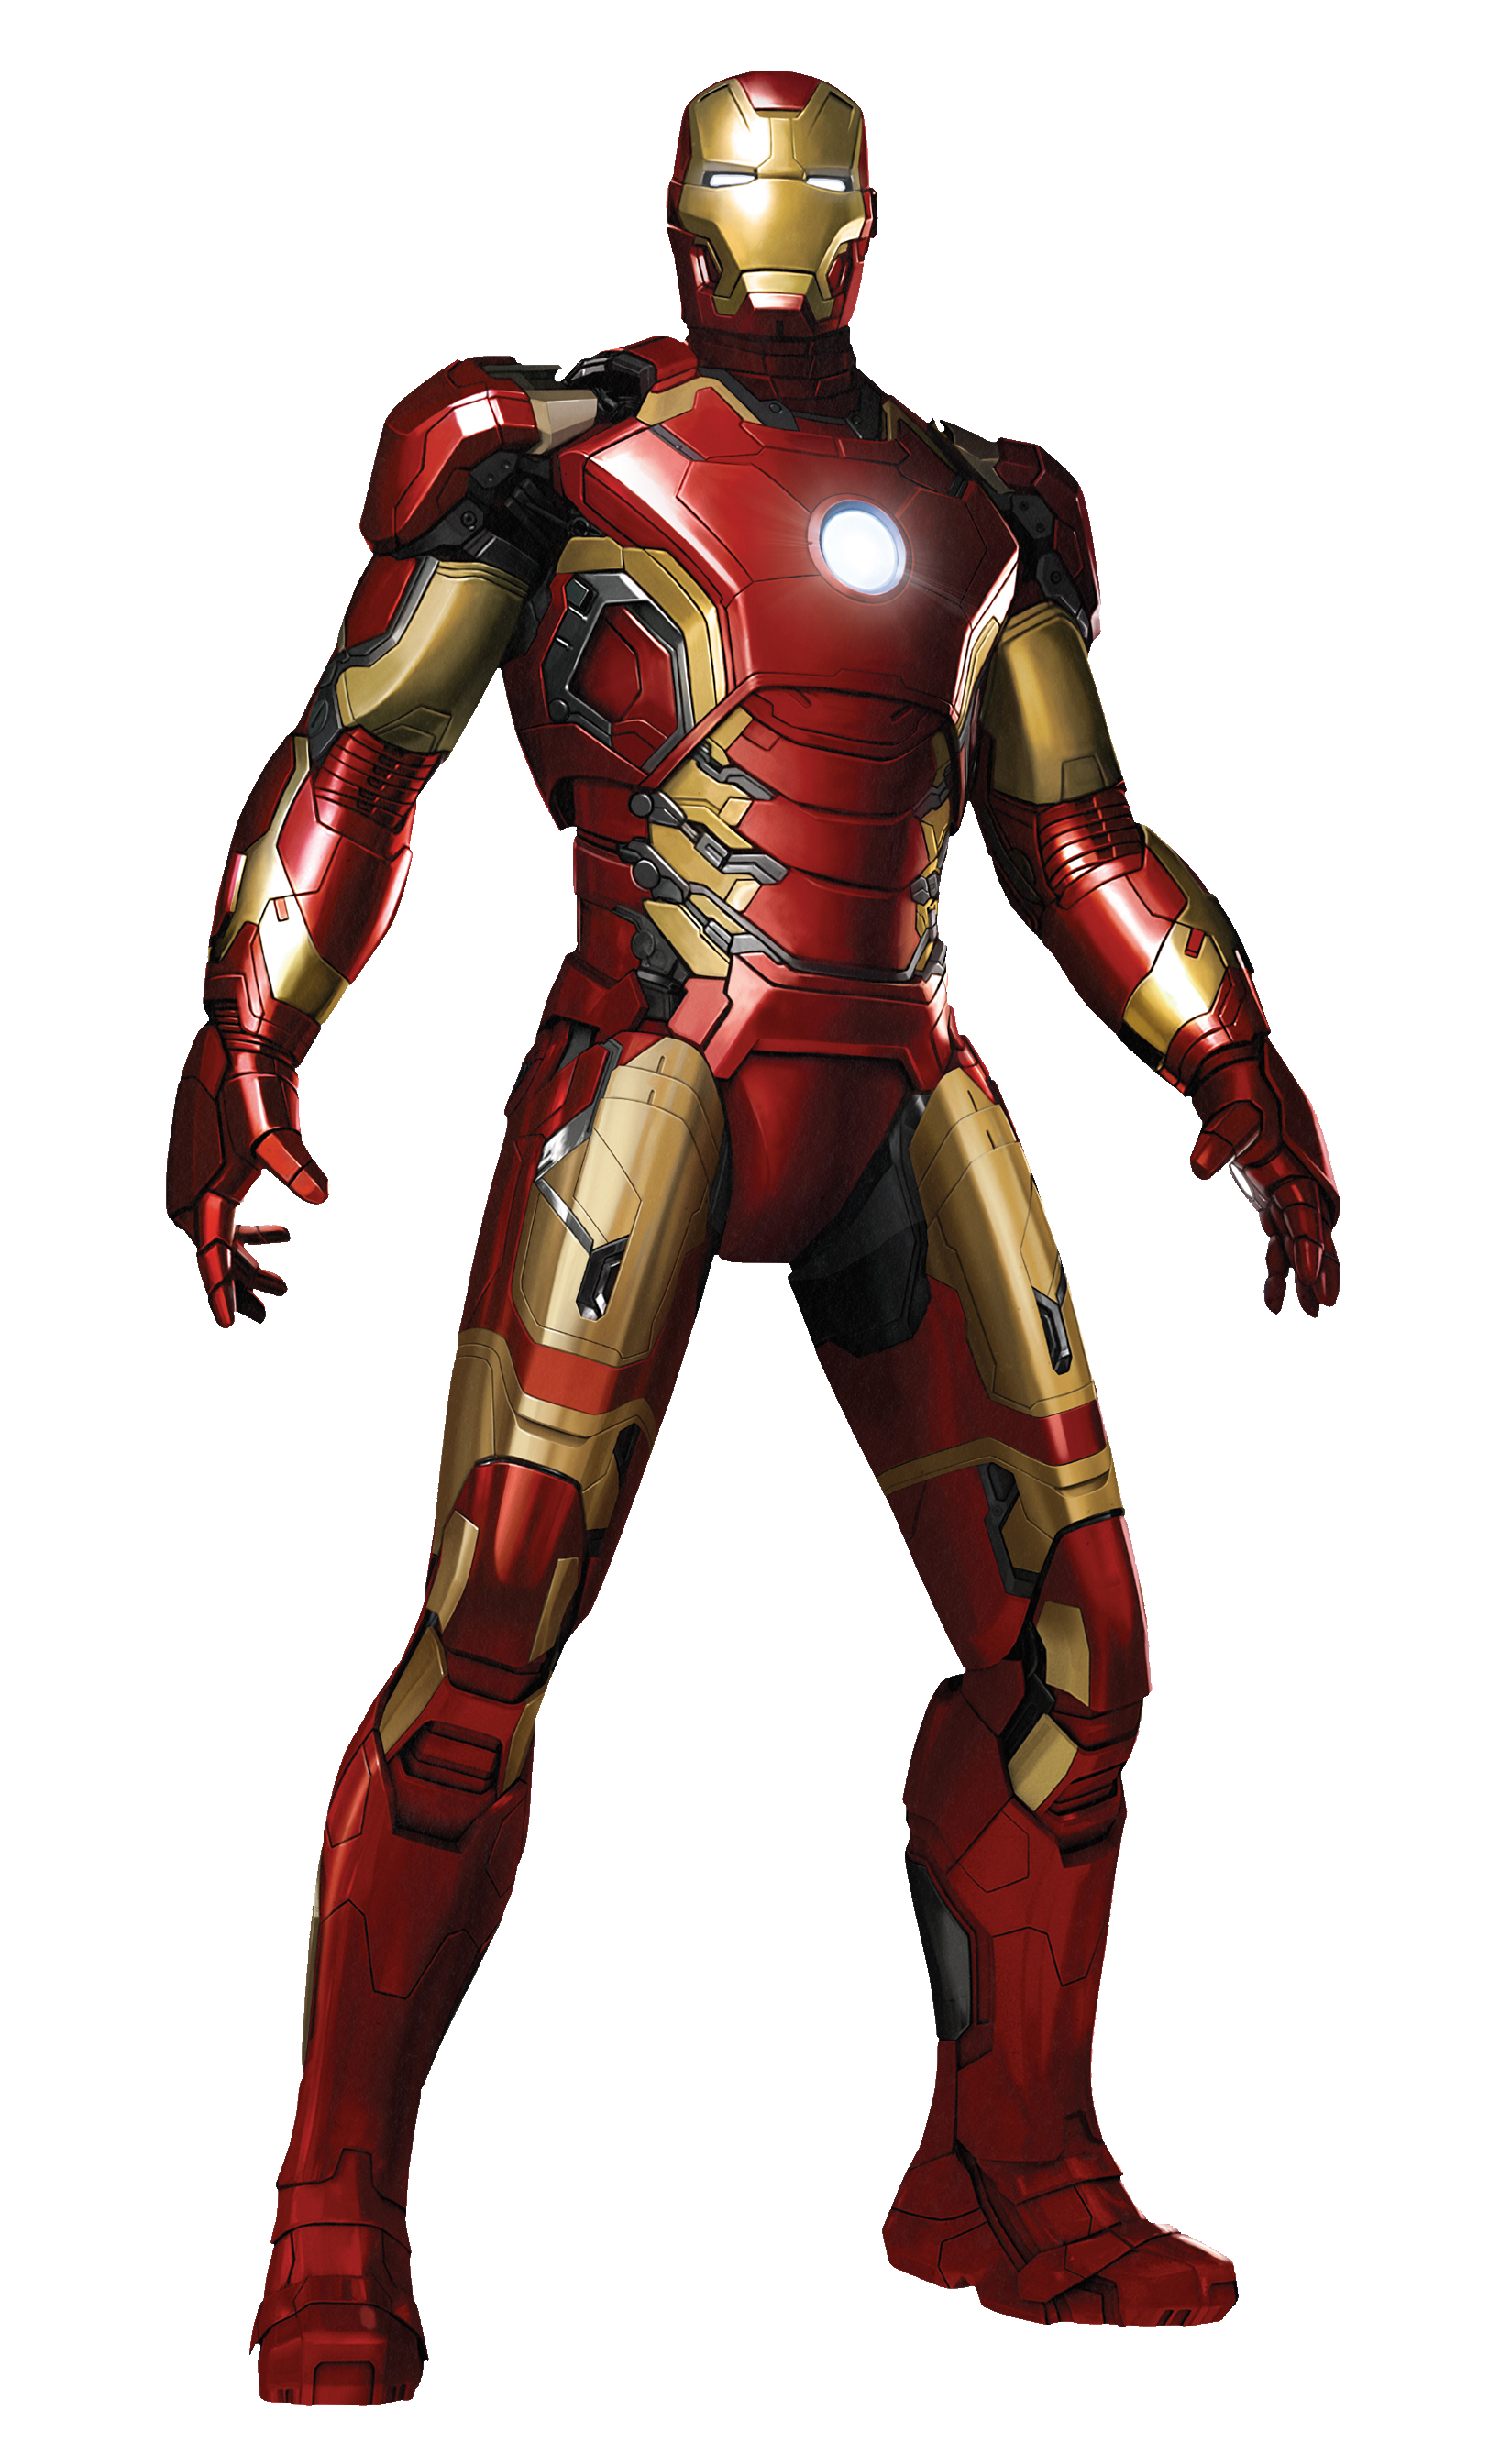 iron man armor marvel movies fandom powered by wikia. Black Bedroom Furniture Sets. Home Design Ideas